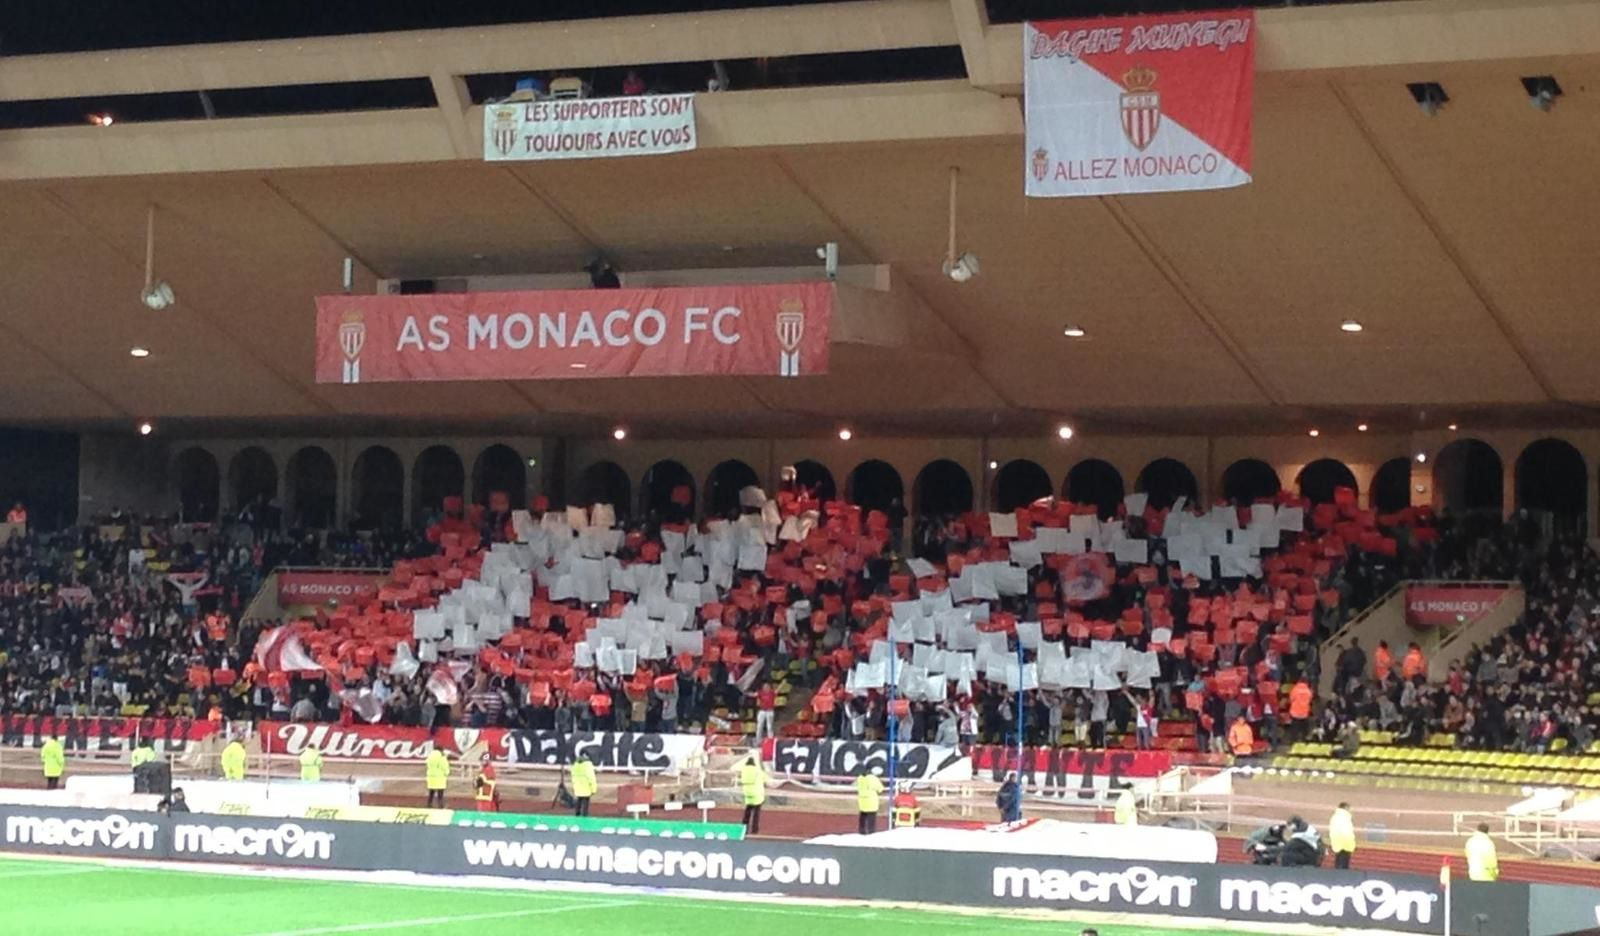 Tifo des supporters monegasques contre Marseille (victoire 2-0 de Monaco)